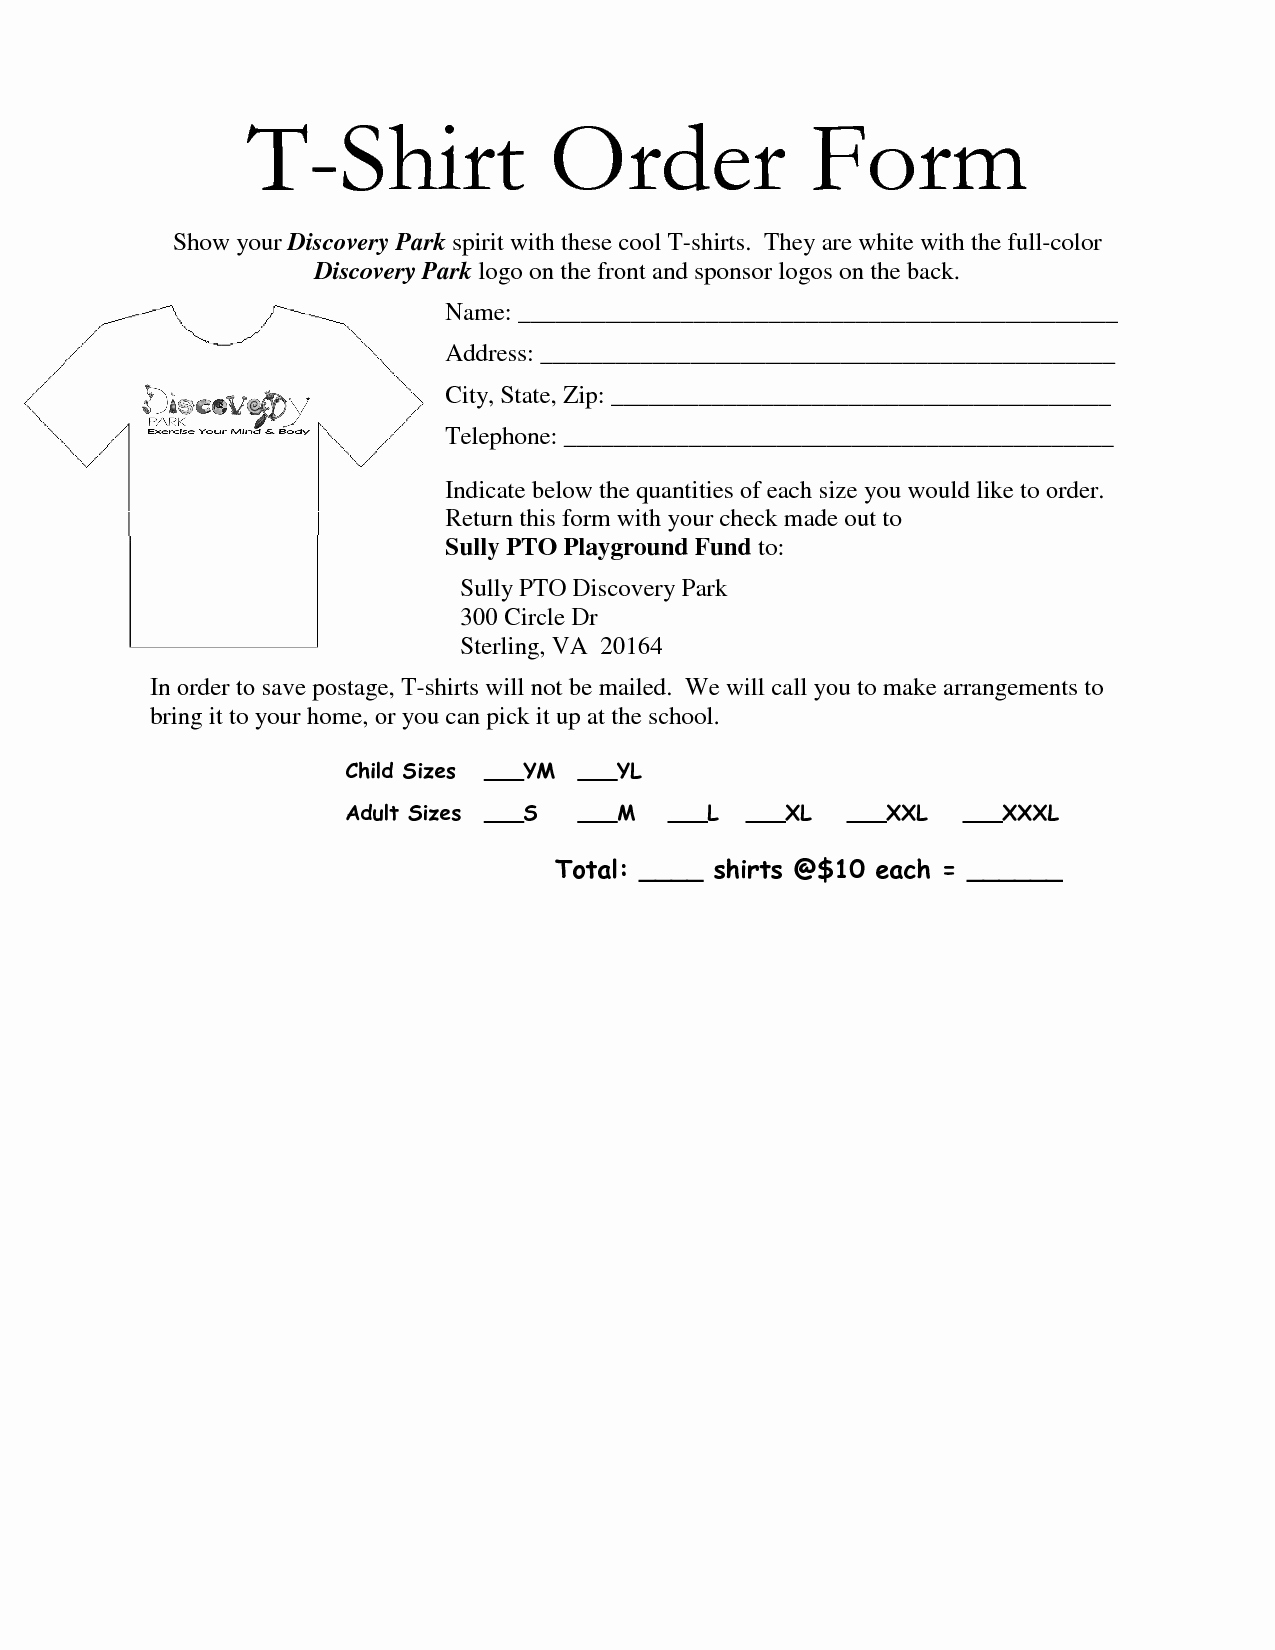 Tshirt order form Template Best Of 35 Awesome T Shirt order form Template Free Images